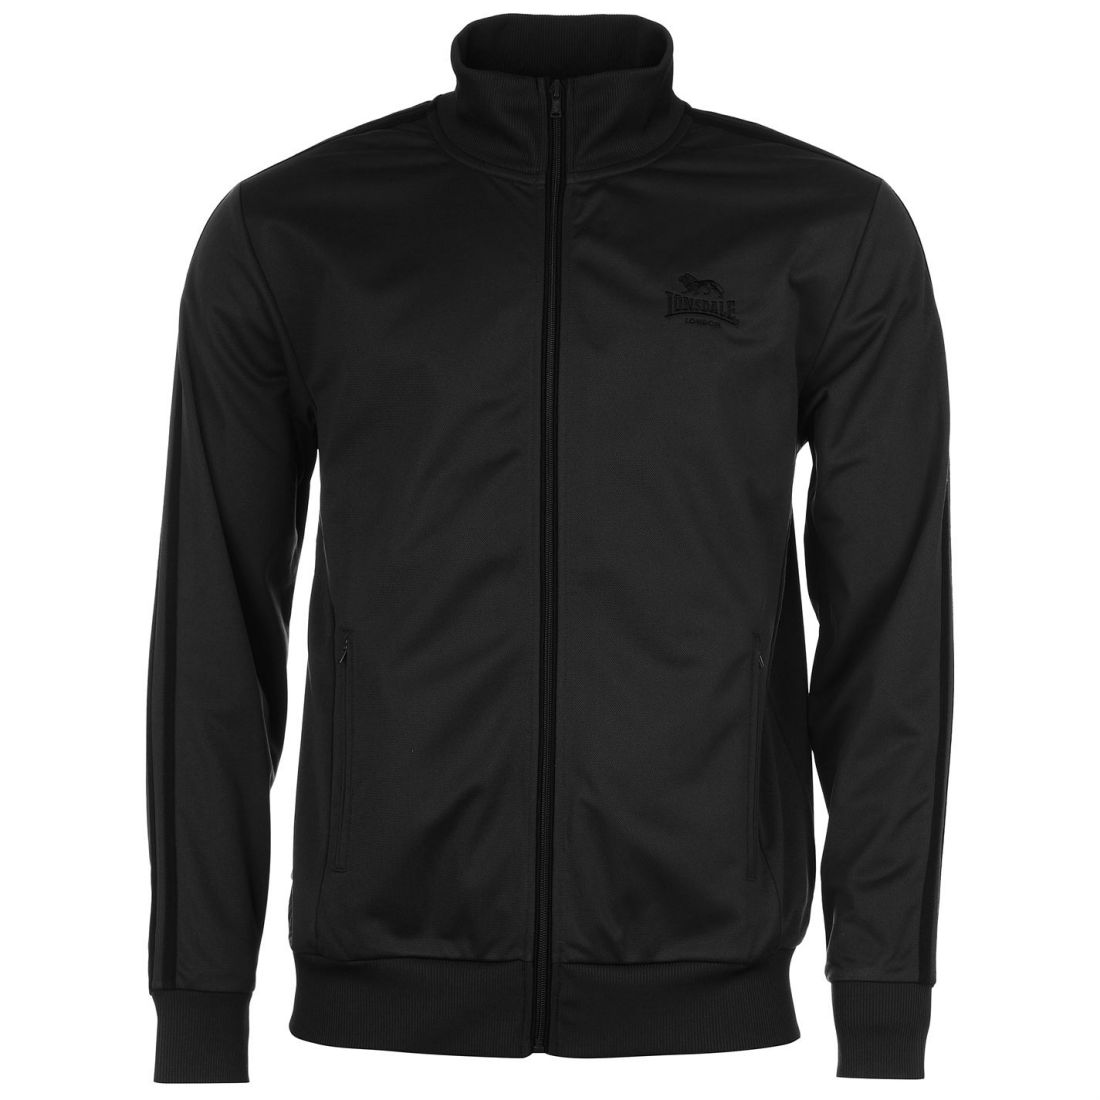 Lonsdale-Mens-Gents-Track-Jacket-Zipped-High-Neck-Sports-Top-Clothing